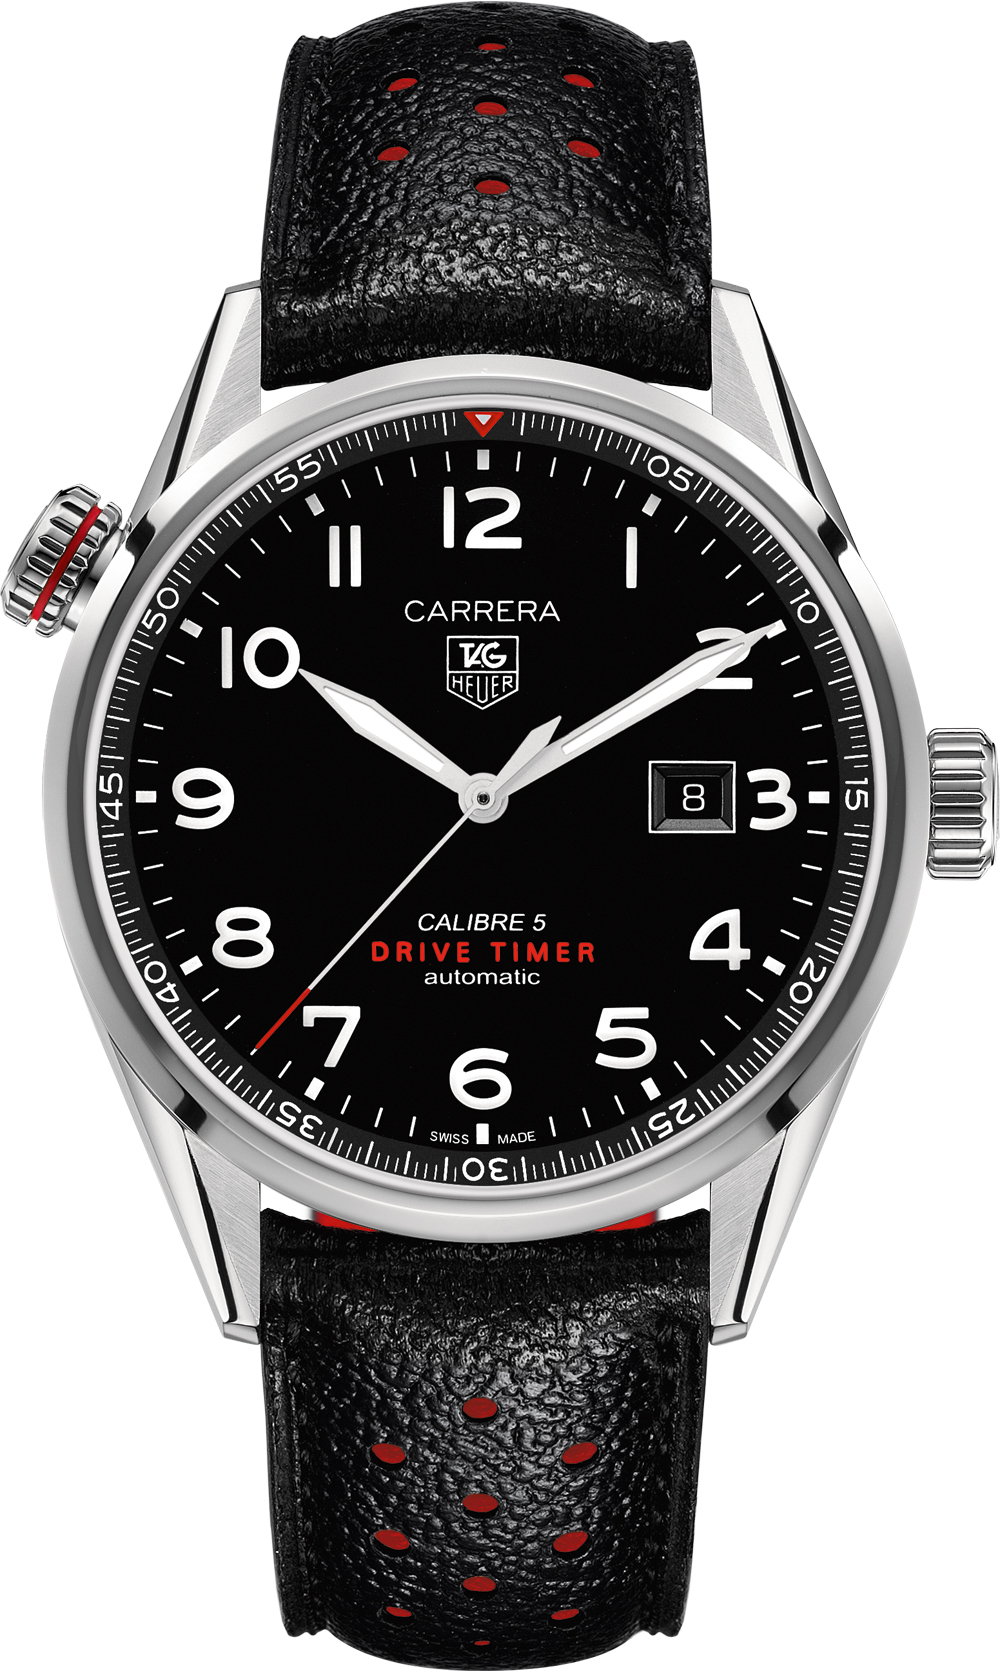 War2a10 fc6337 tag heuer carrera automatic mens watch for Tag heuer carrera